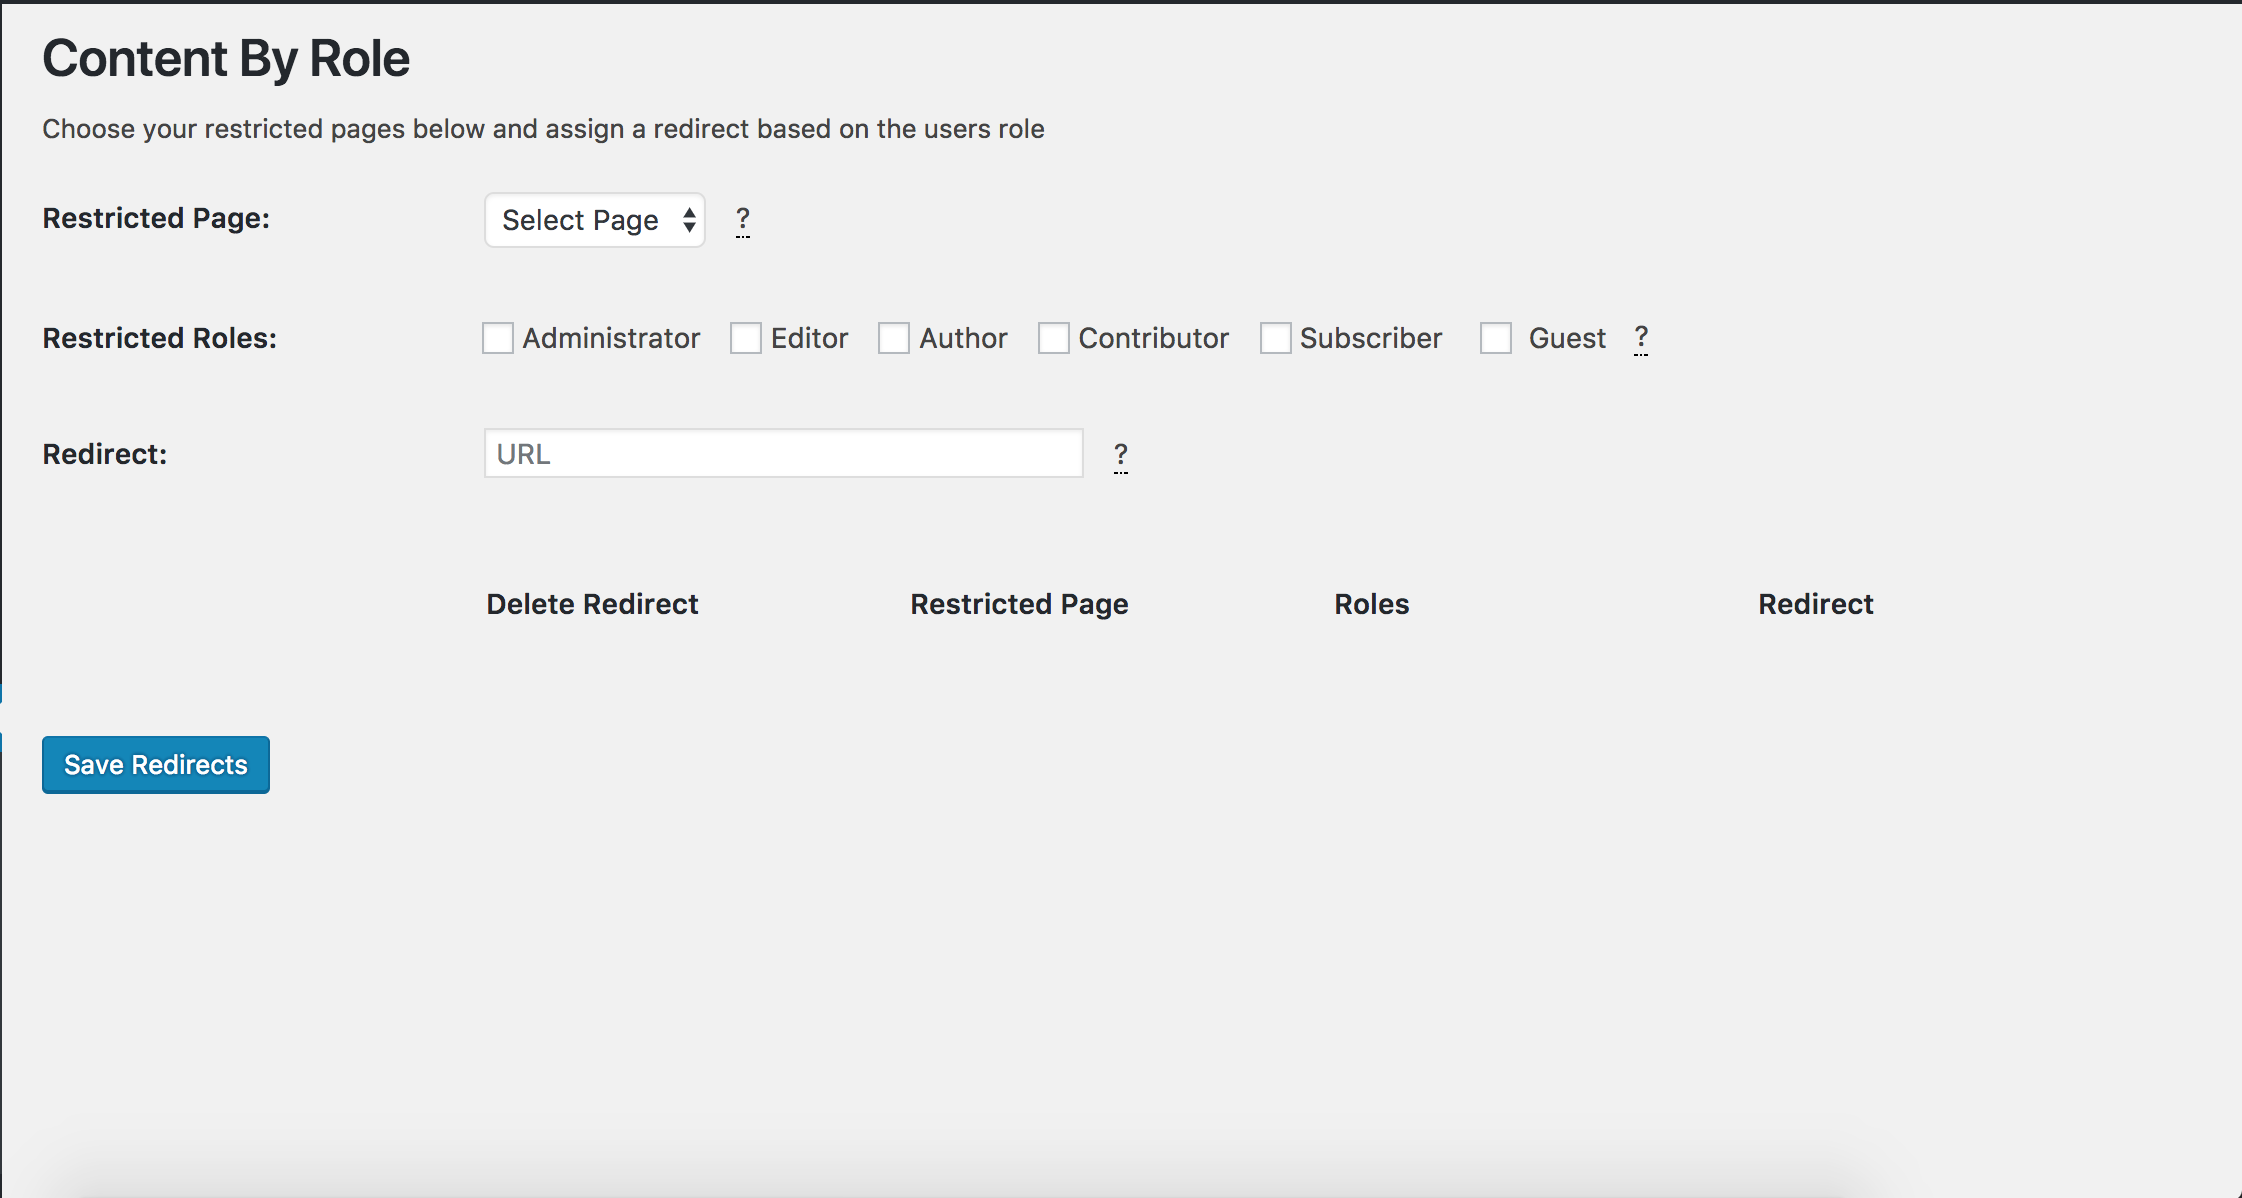 The settings page for Content By Role